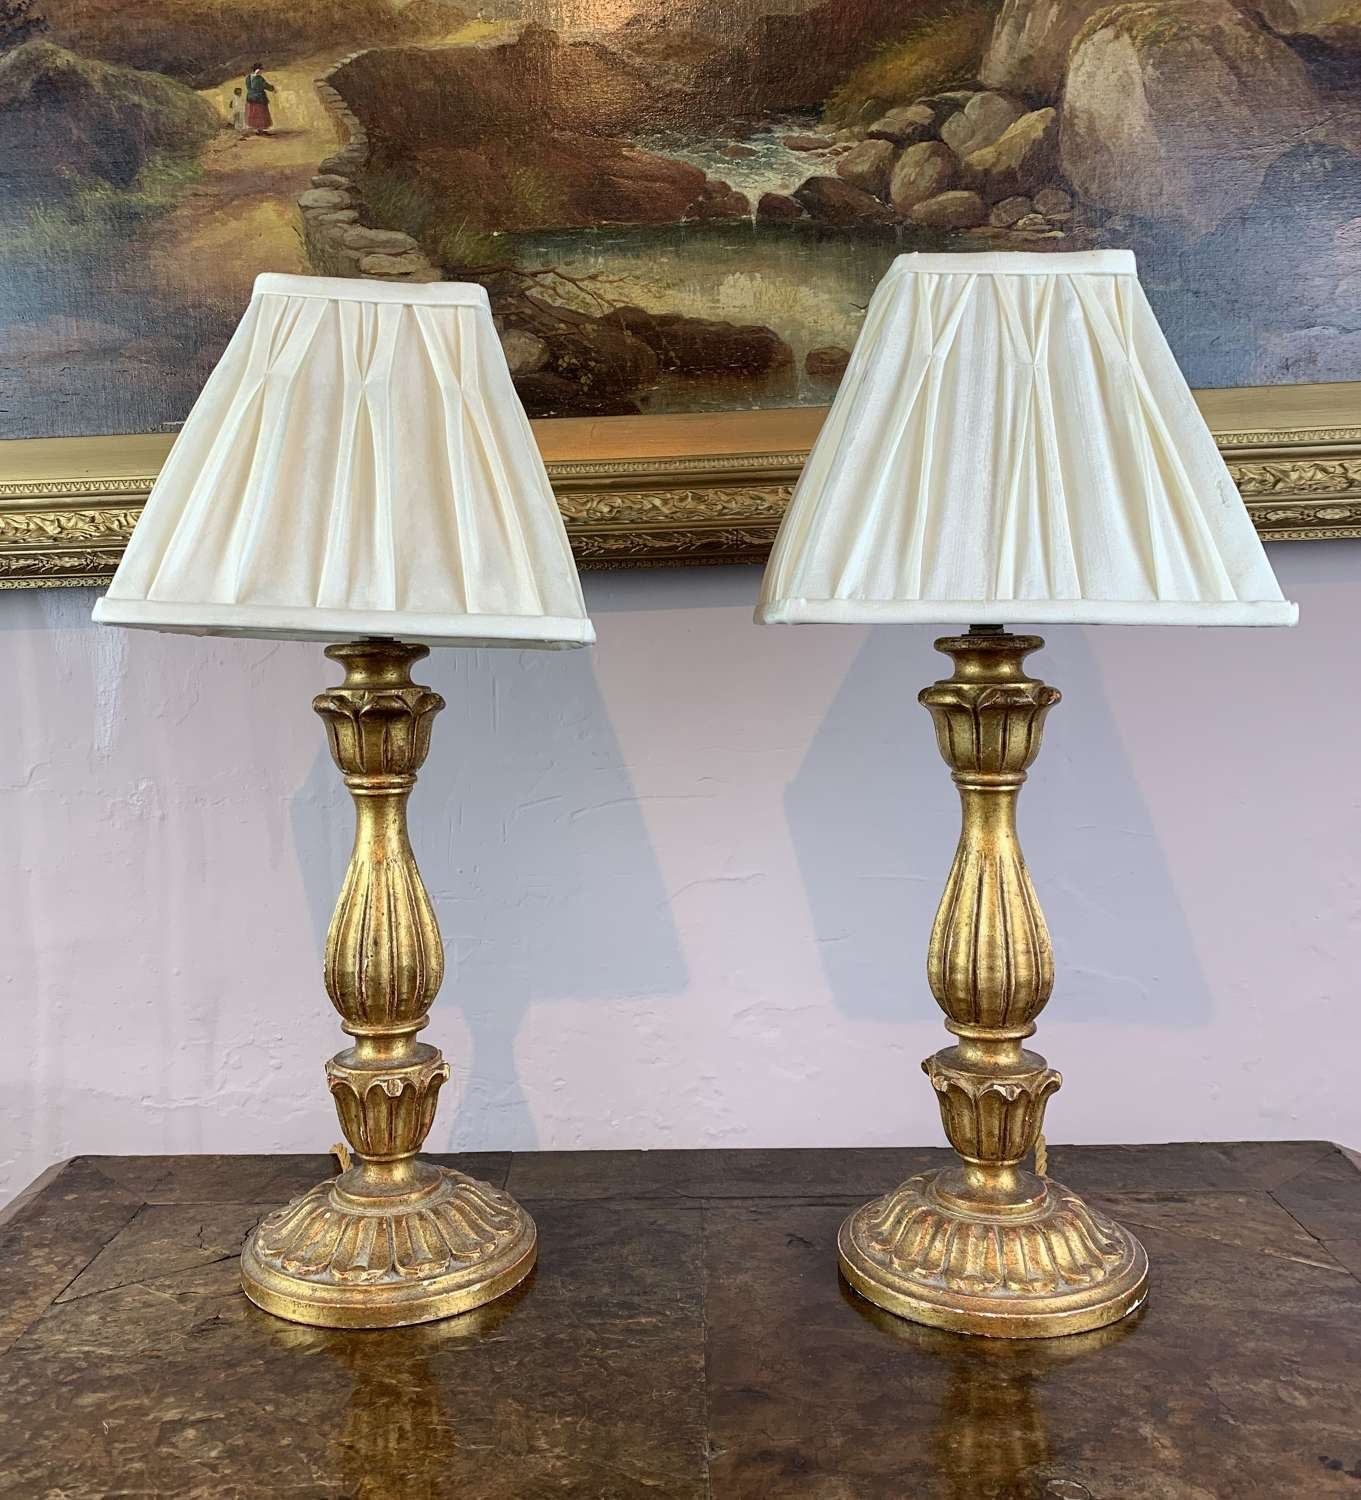 Pair of Carved Giltwood Table Lamps